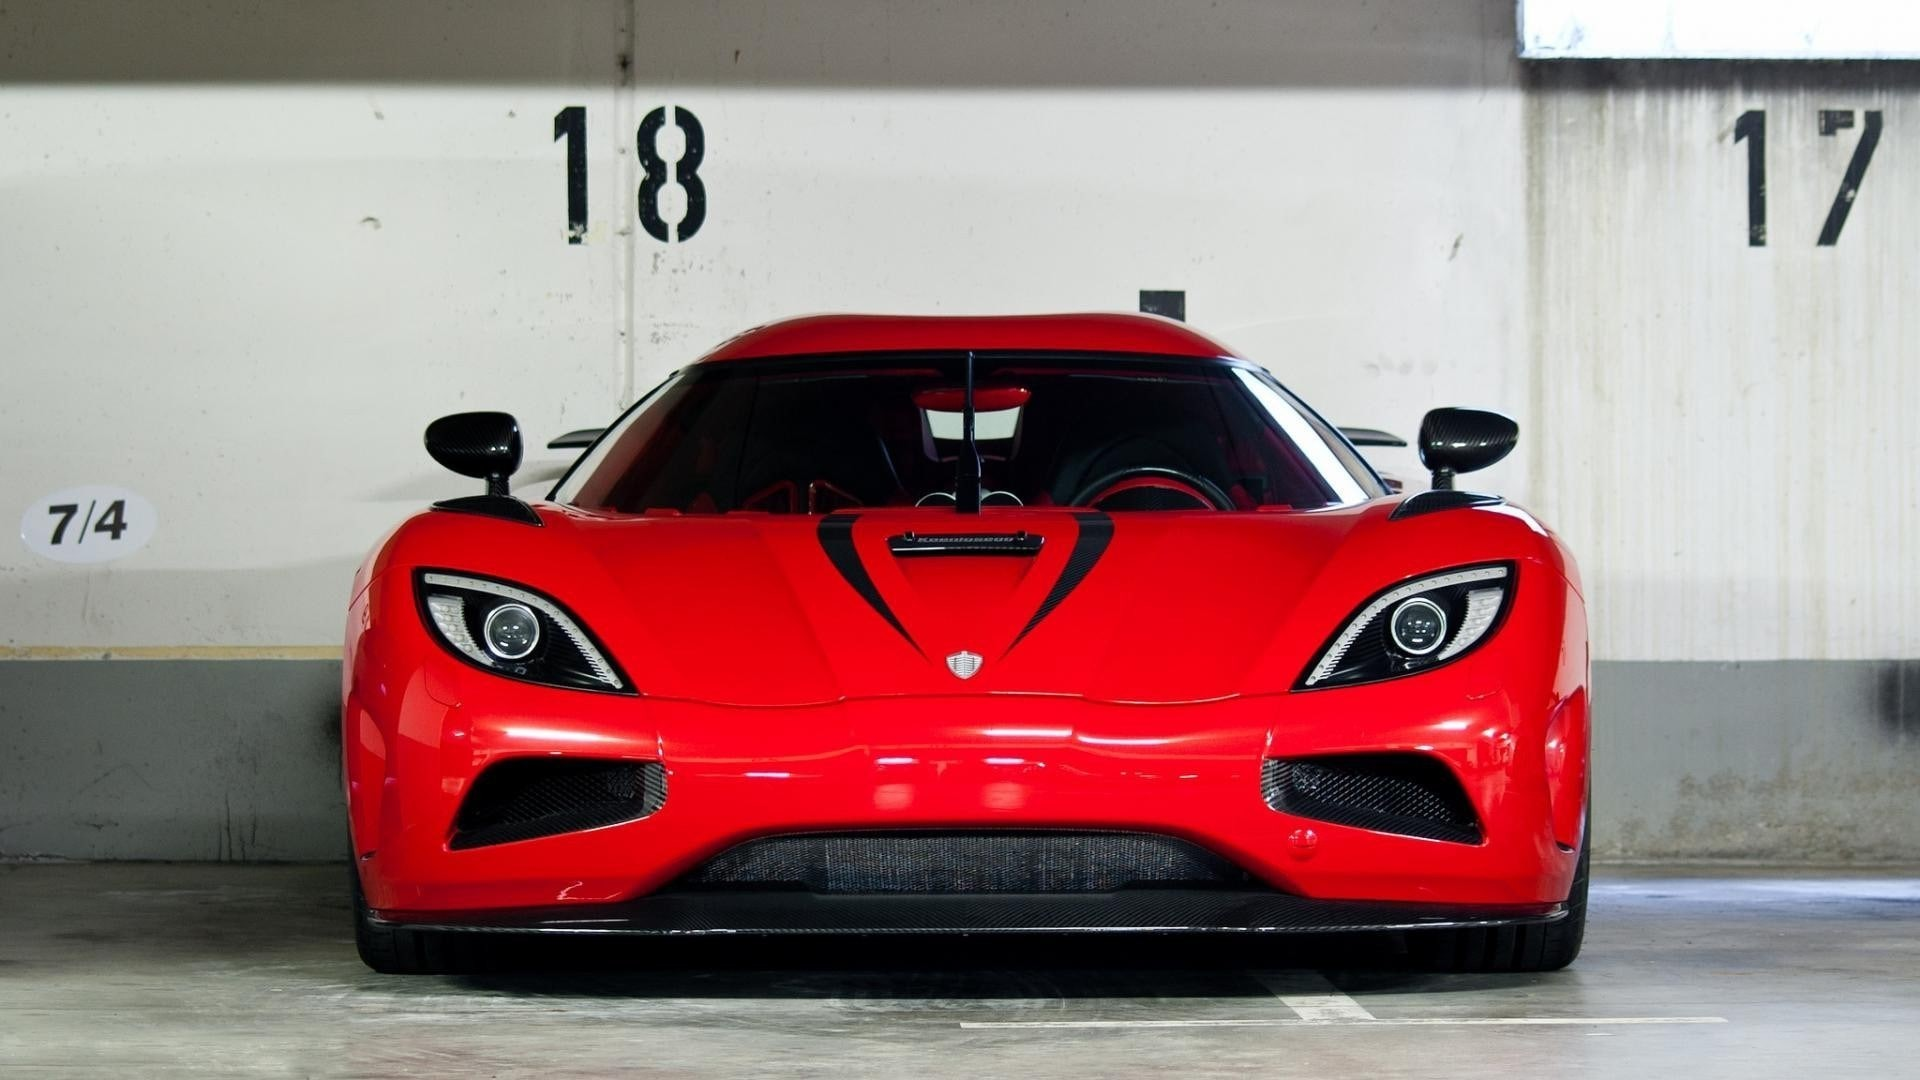 1920x1080 Koenigsegg Agera R HD pics Koenigsegg Agera R Wallpapers hd